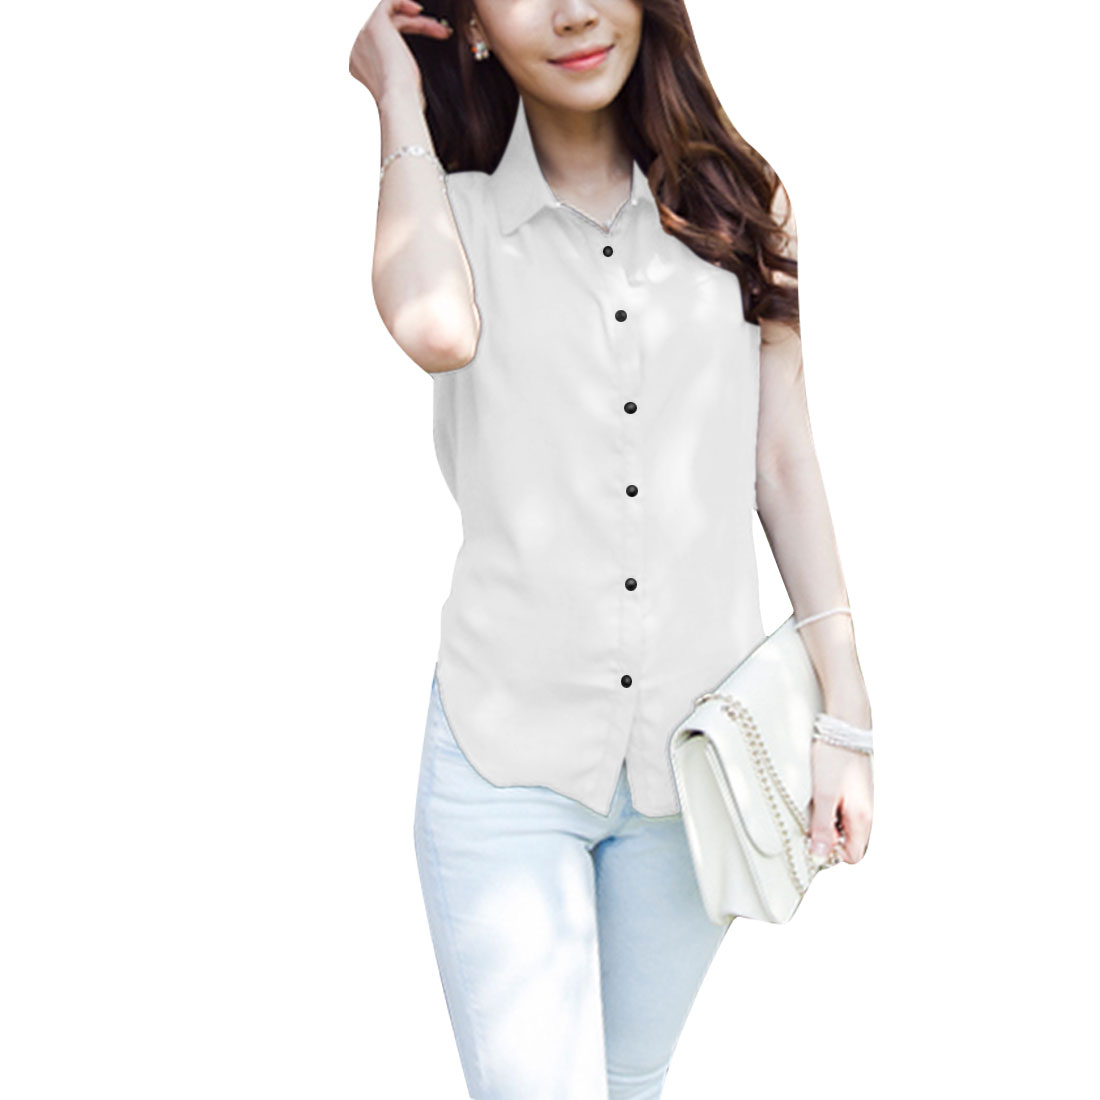 Women Button Closure Sleeveless Semi Sheer Shirt White S